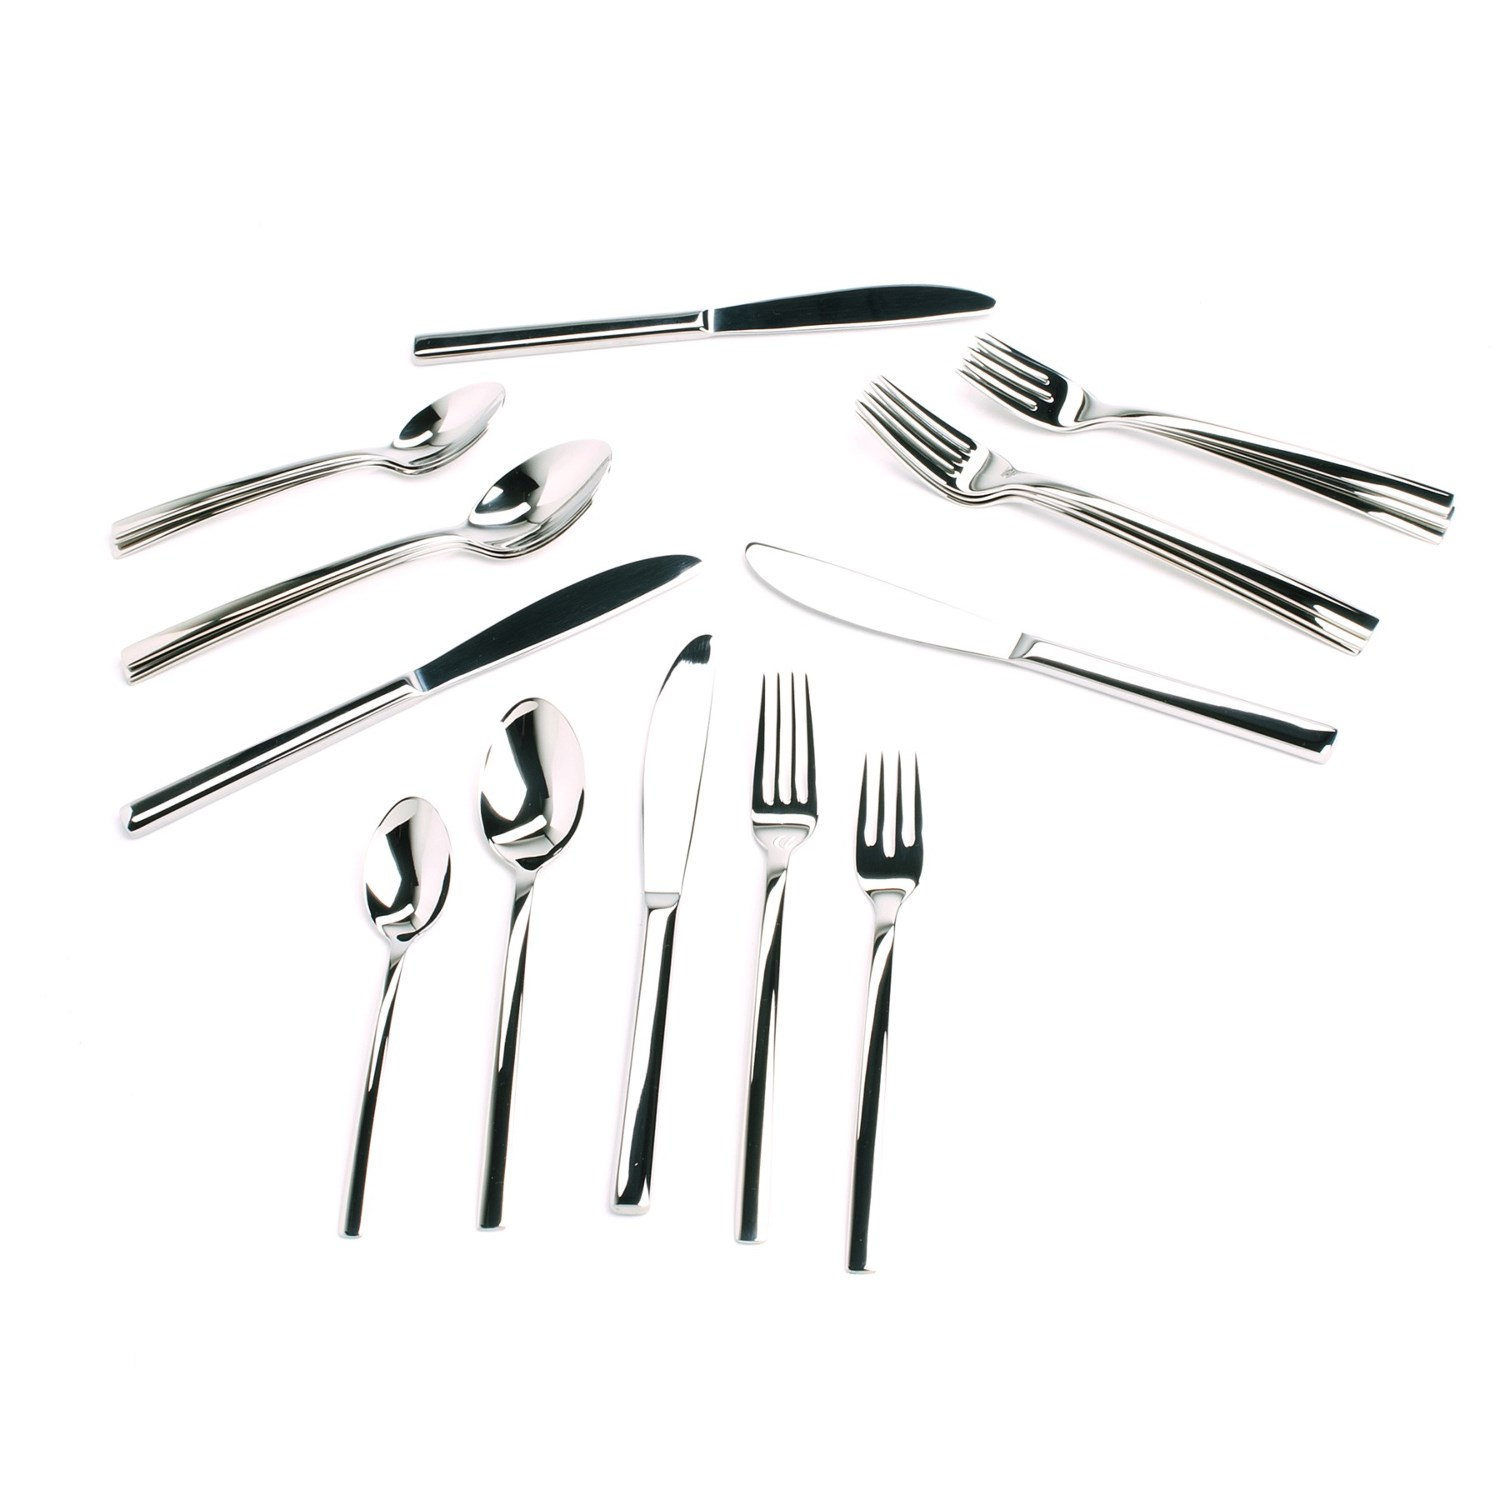 wmf miami flatware set cromargan 18 10 stainless steel 20 piece save 68. Black Bedroom Furniture Sets. Home Design Ideas